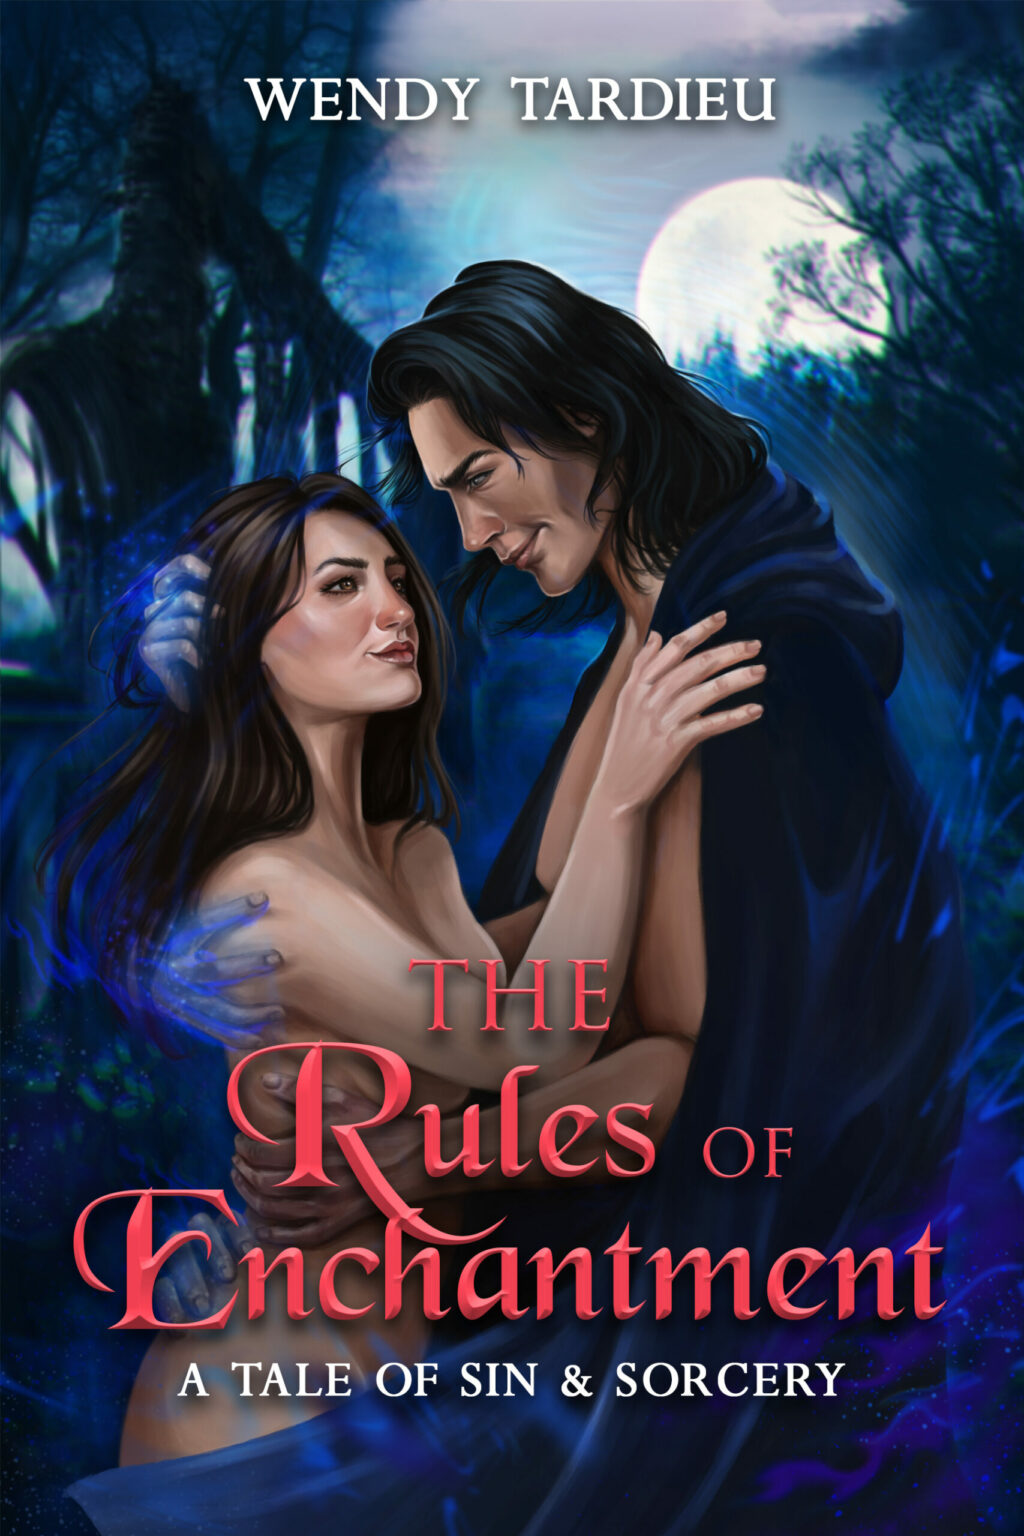 The Rules of Enchantment by Wendy Tardieu